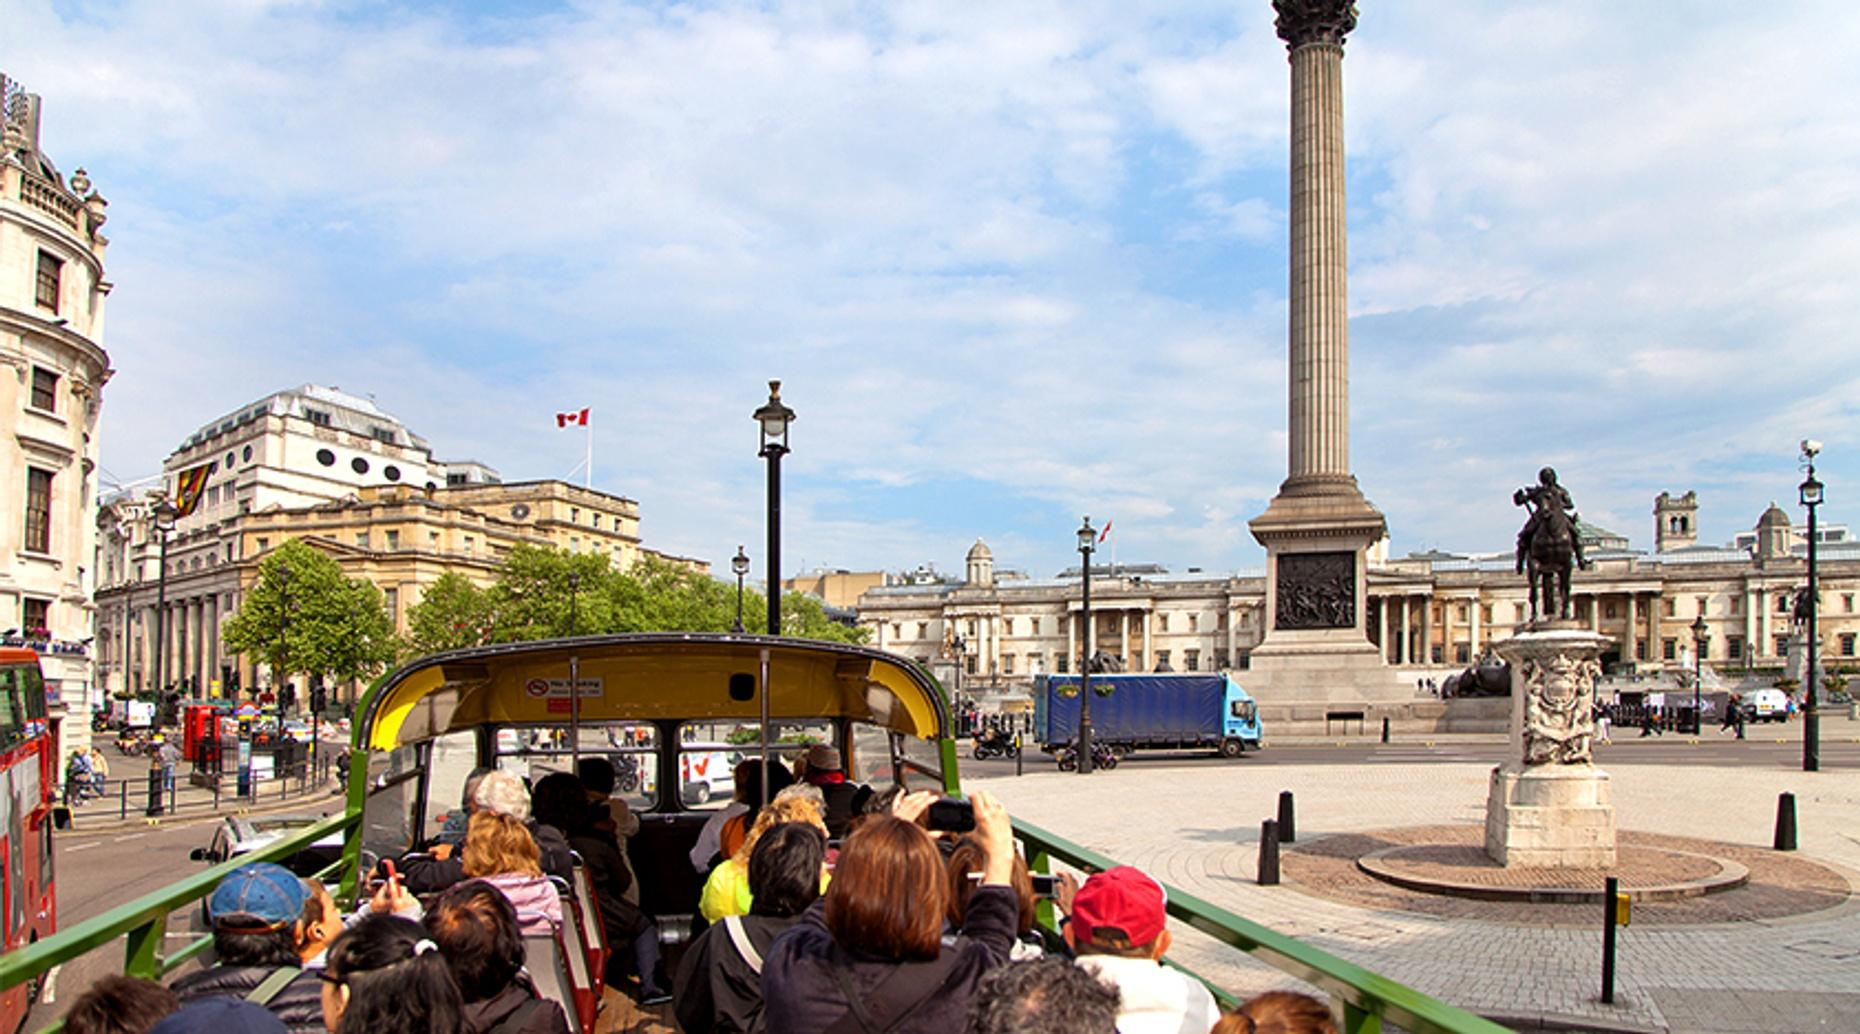 Vintage Bus Tour and River Cruise